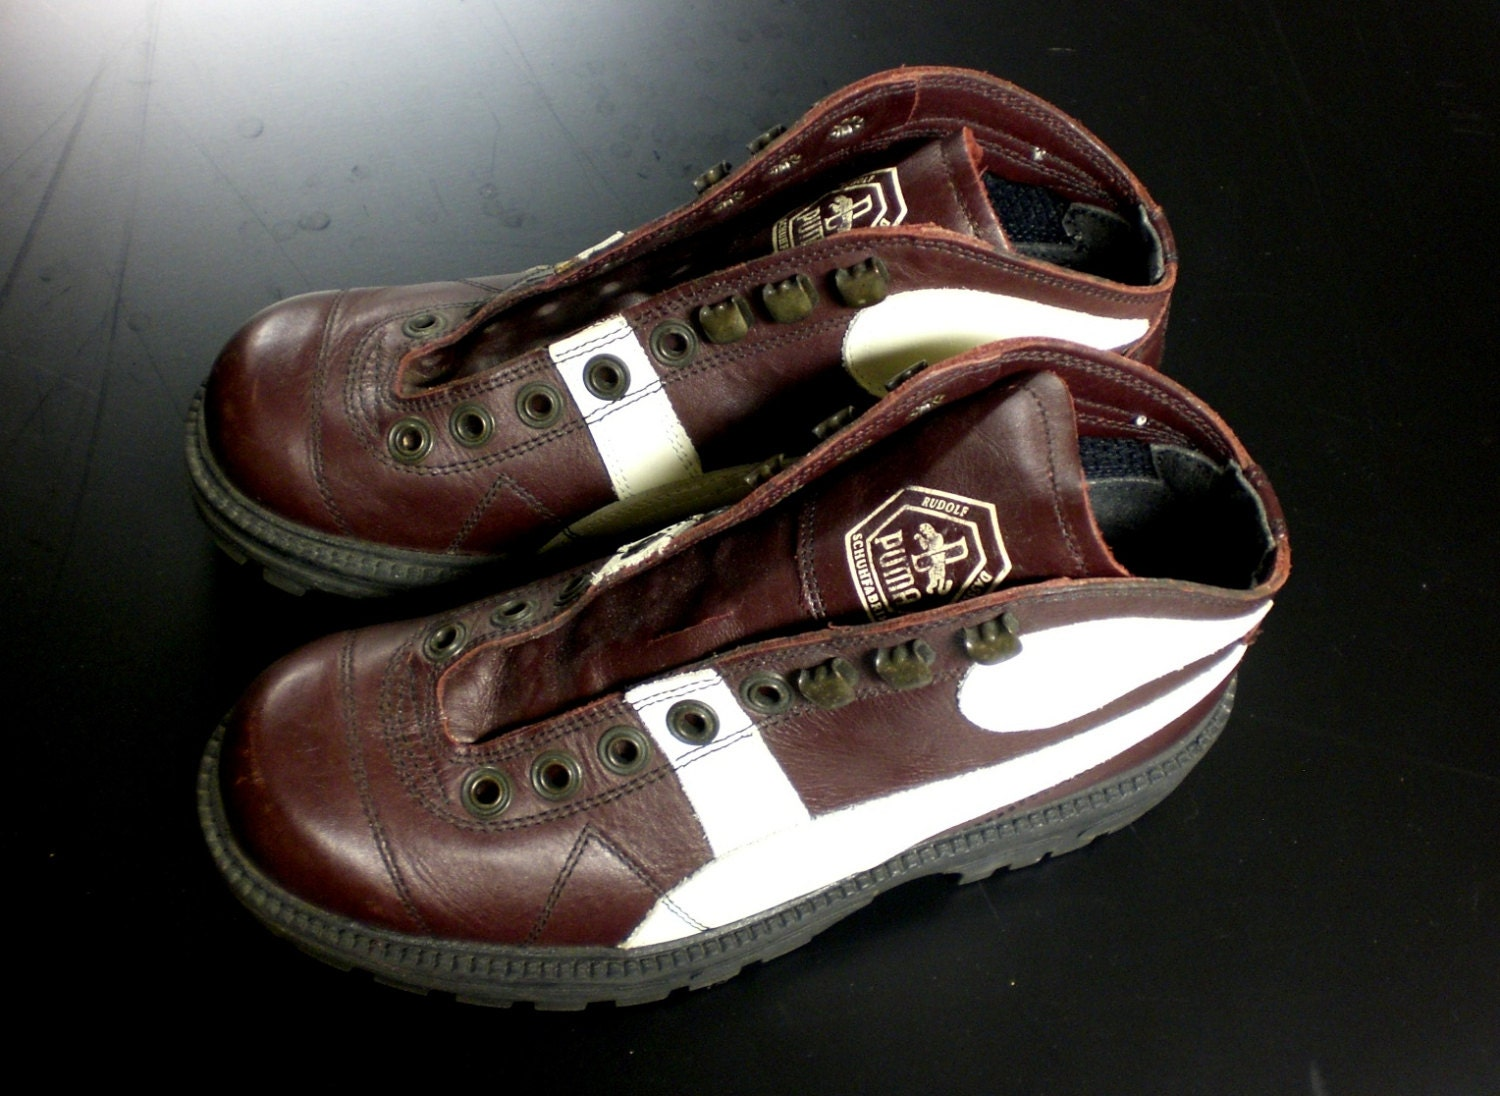 vtg brown leather shoes high top hiking boots small